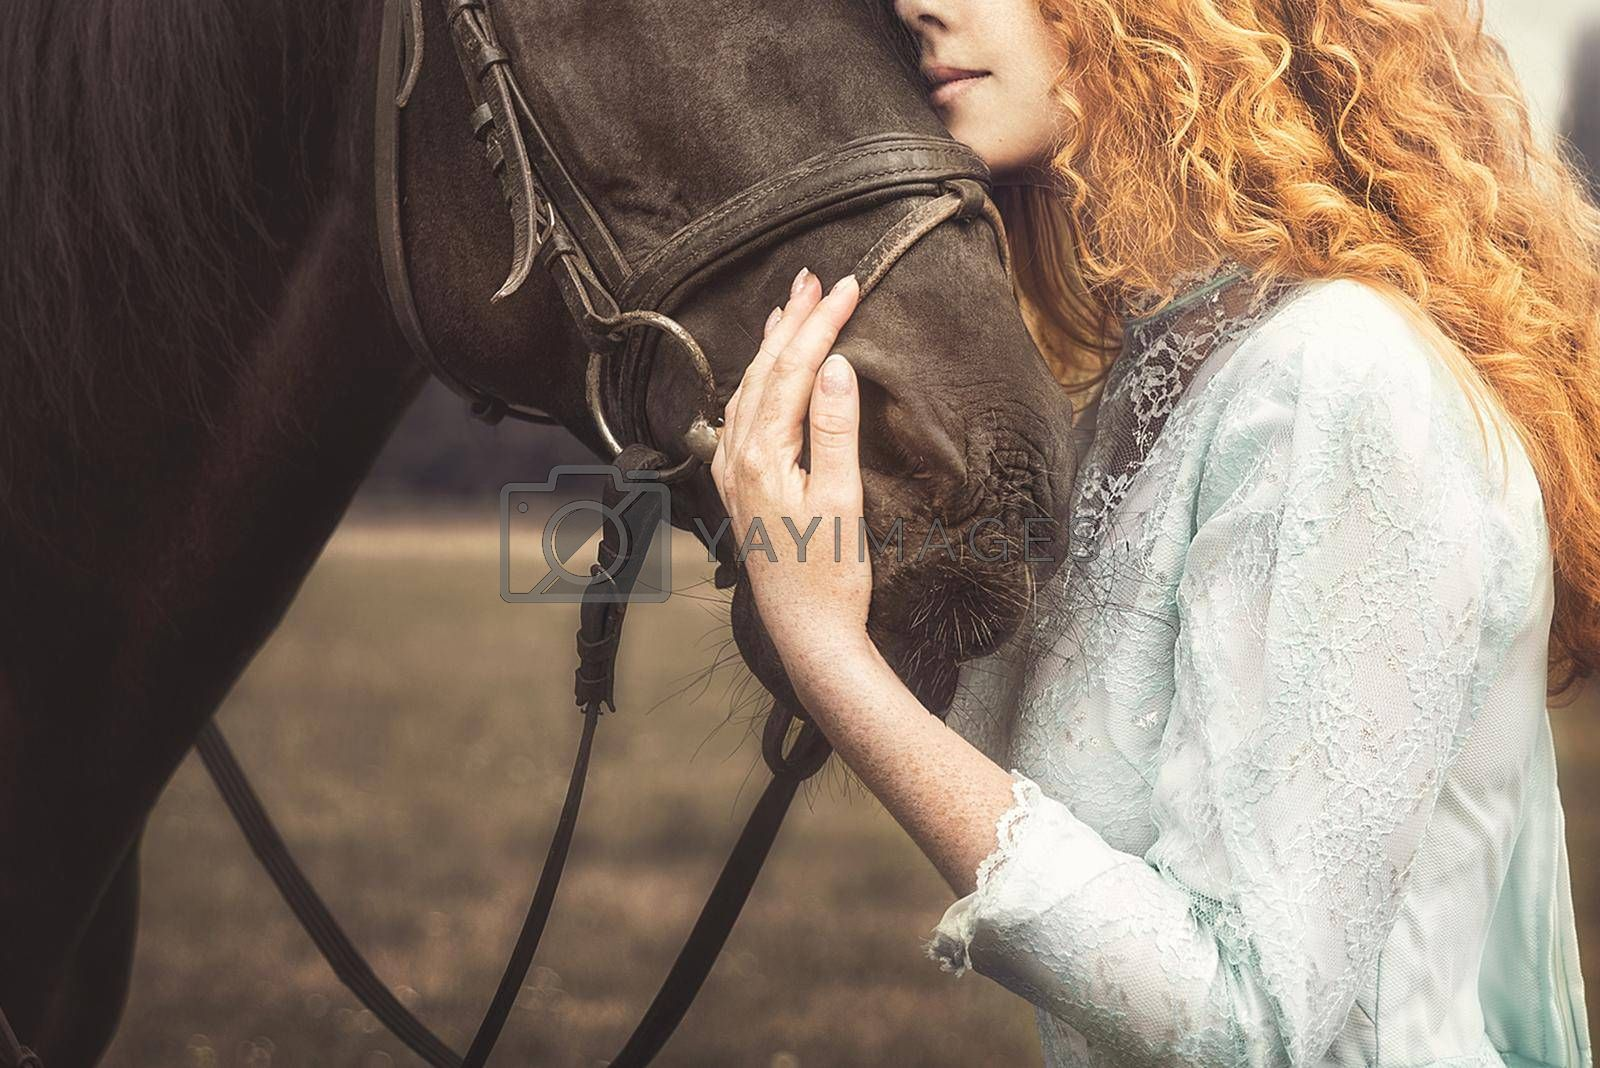 Artistic photo. young Woman with no face dressed in an elegant vintage dress, gently cuddling a horse, stroking his head. love for animals by Nickstock